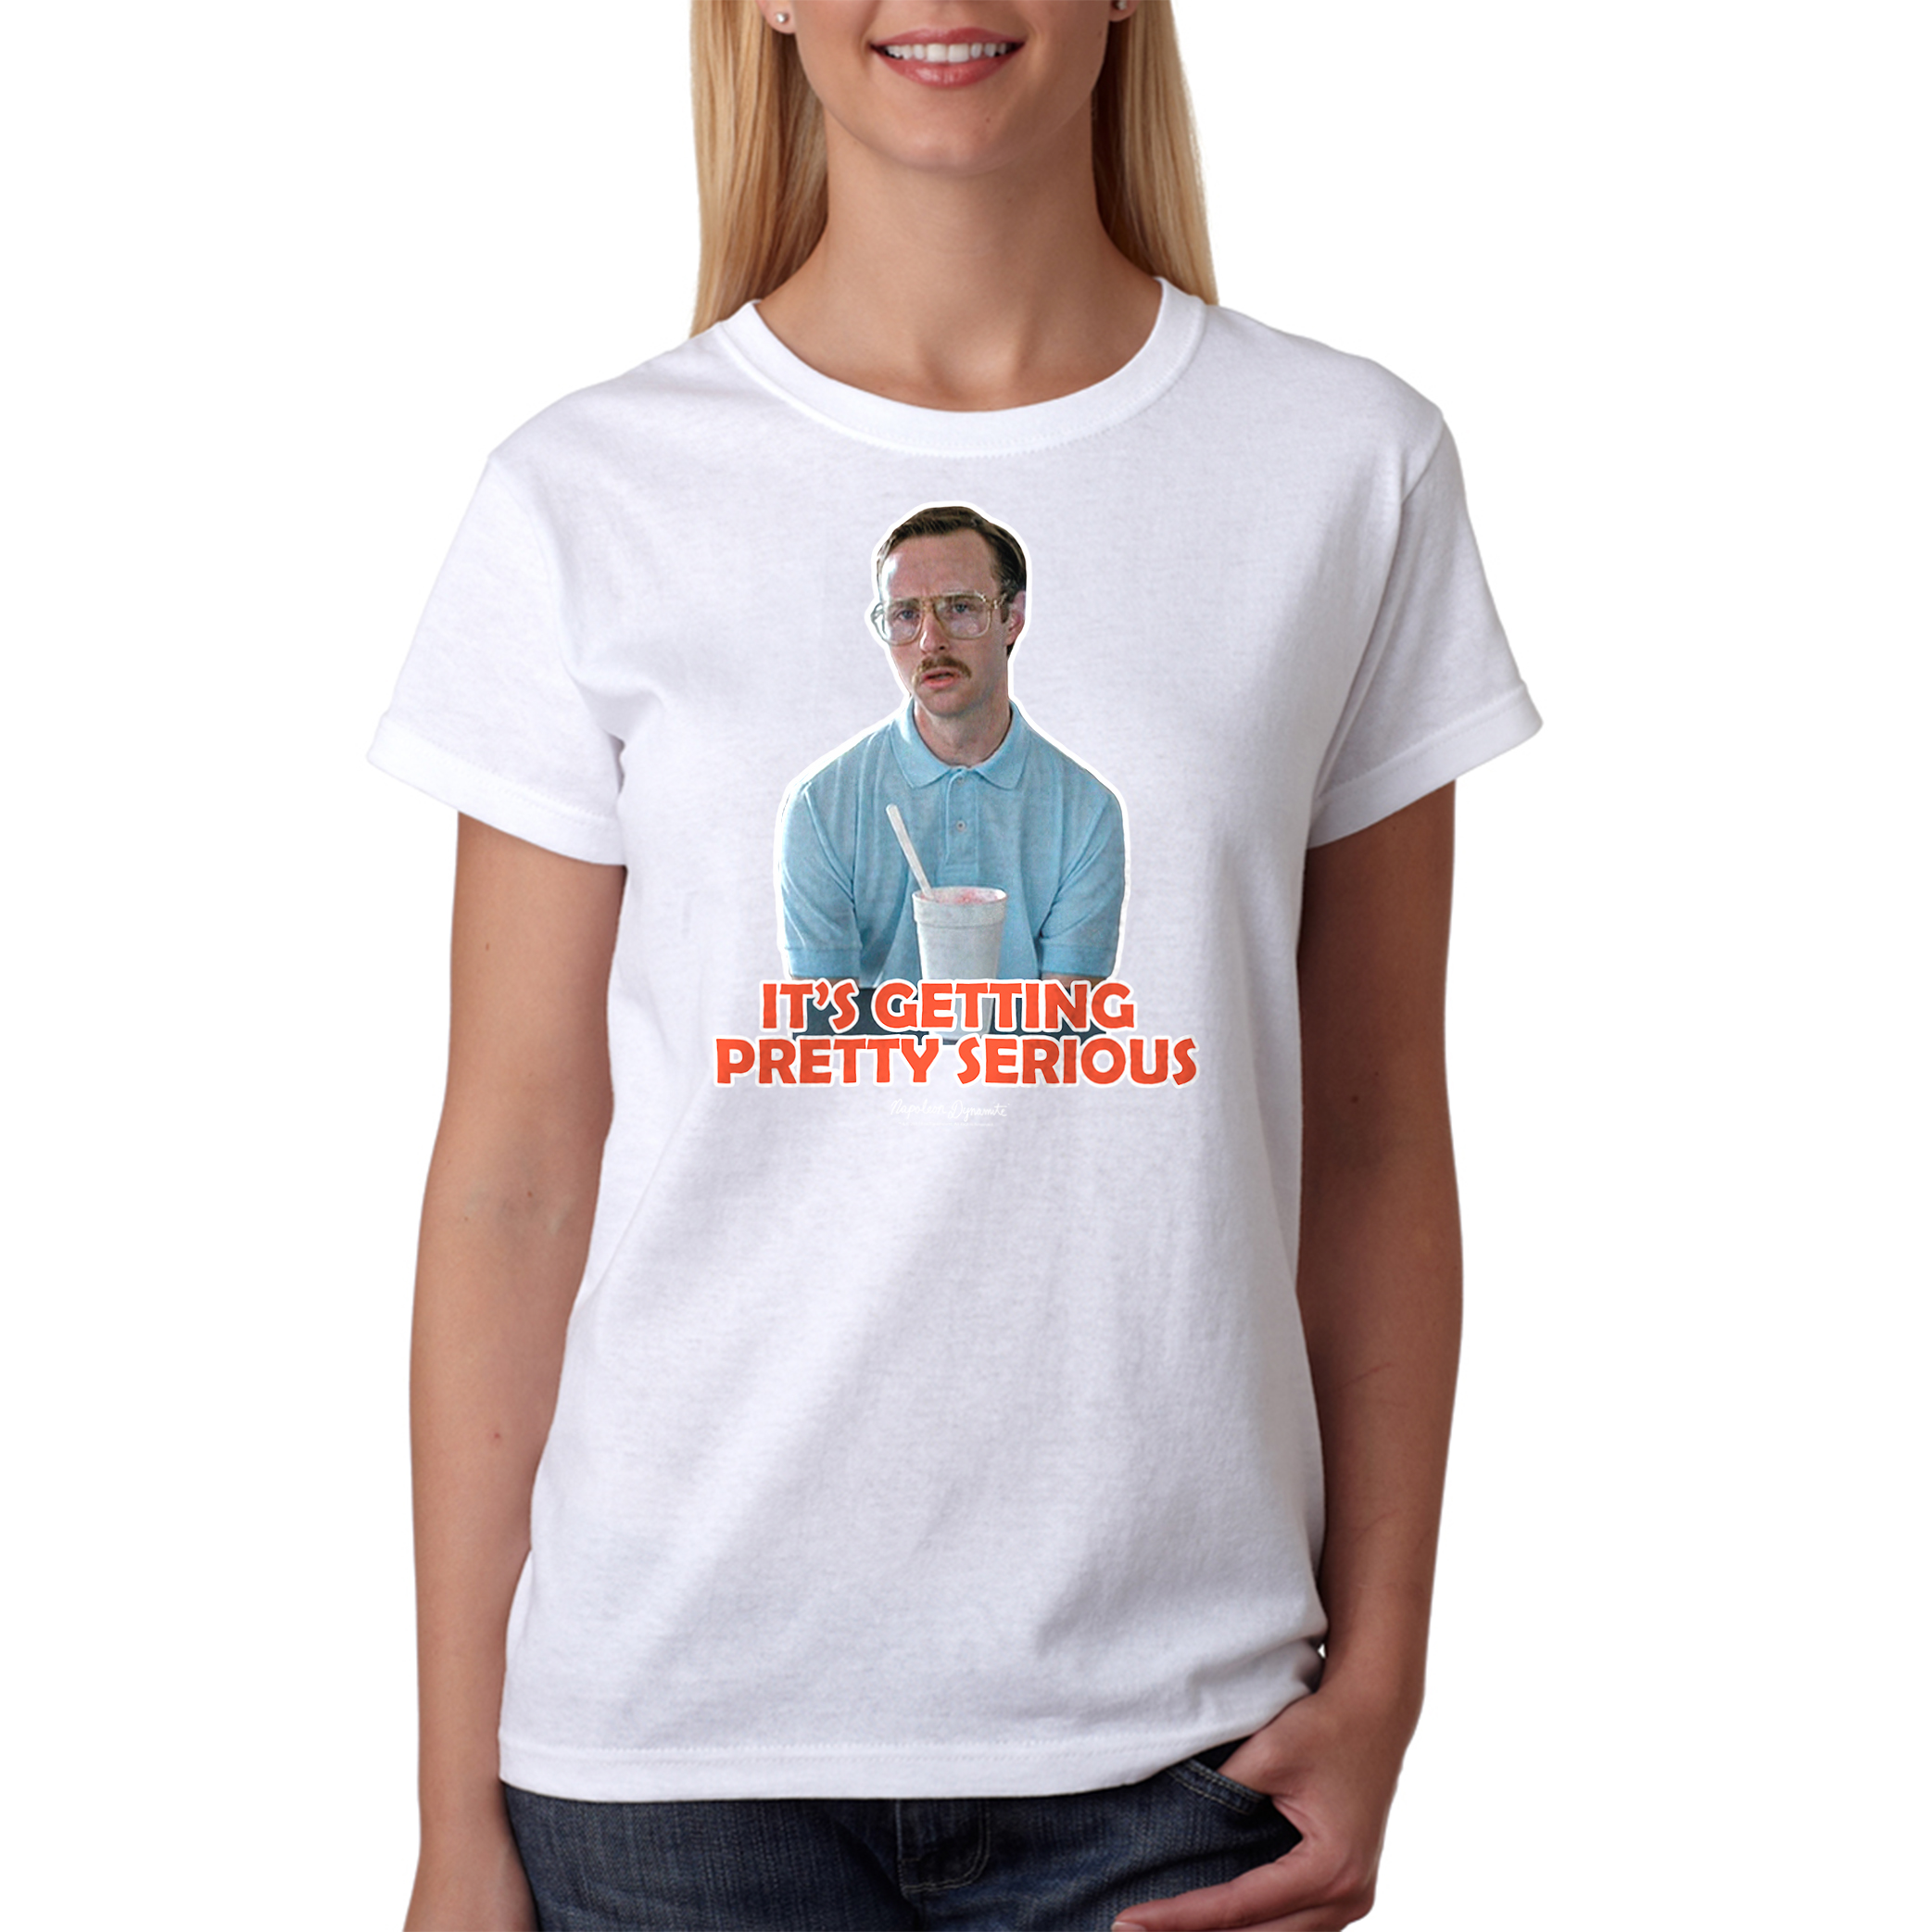 Napoleon Dynamite Getting Serious Outline Women's White Funny T-shirt NEW Sizes S-2XL